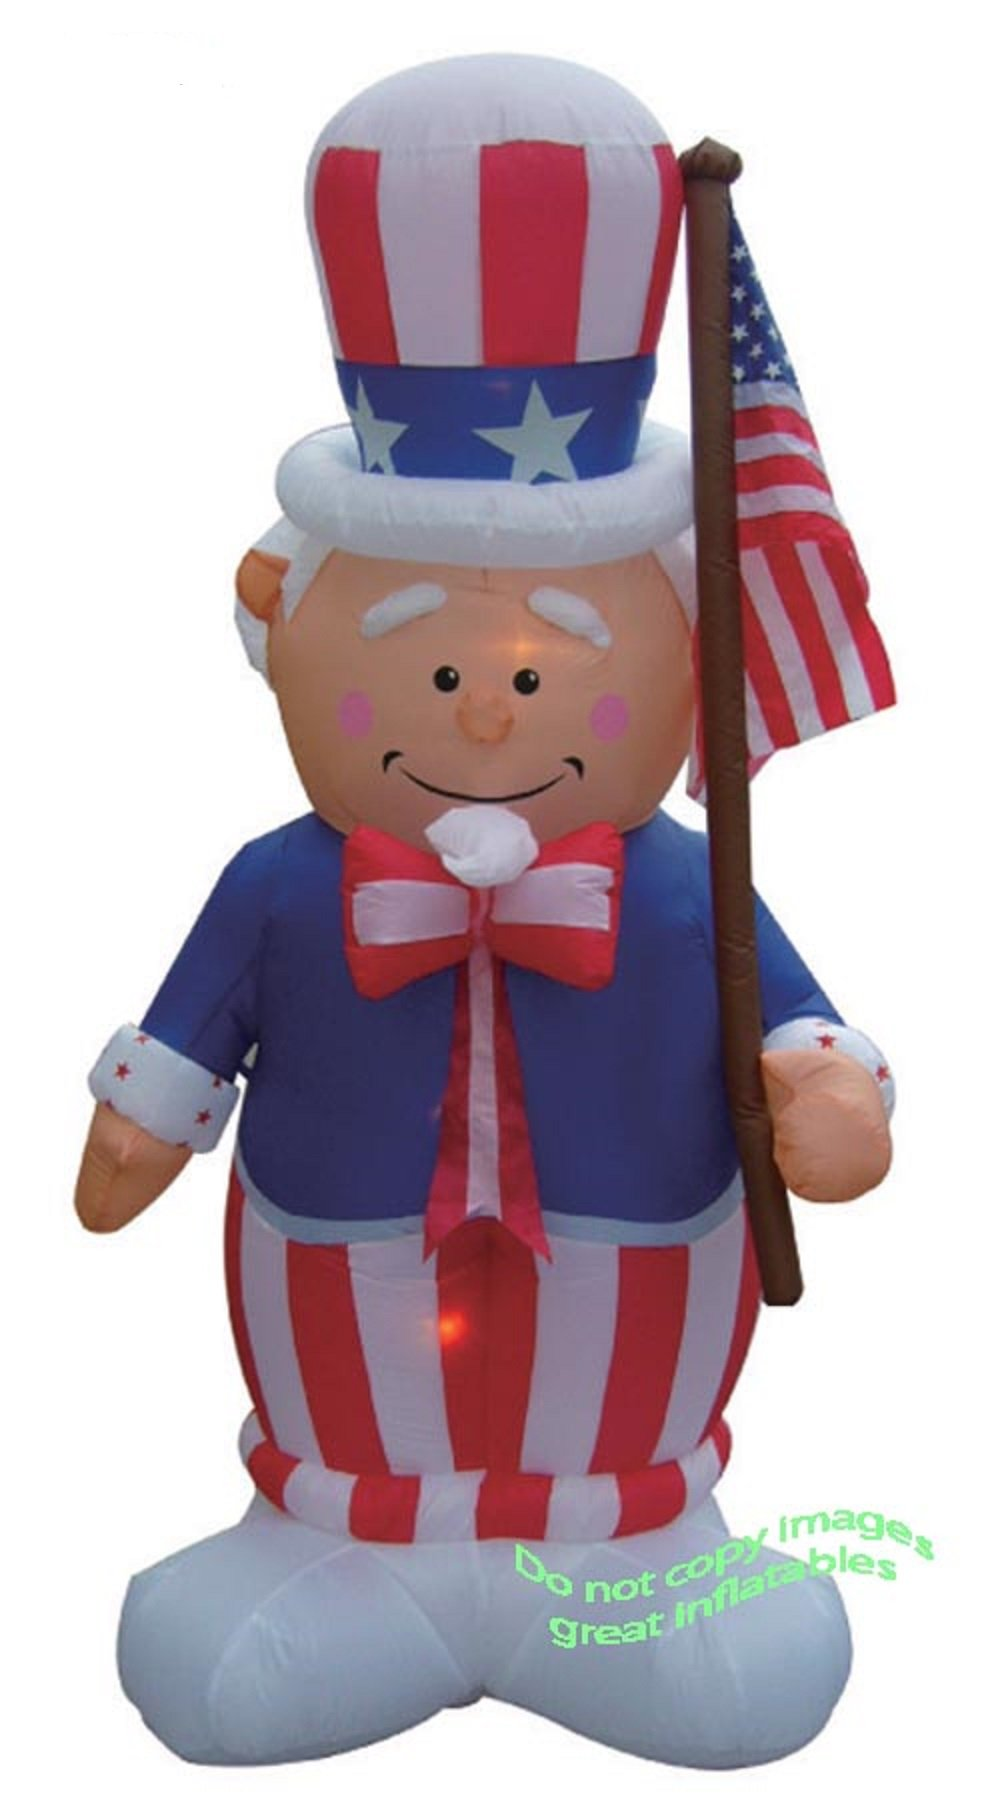 4TH OF JULY/MEMORIAL DAY INFLATABLE 8' TALL AIRBLOWN UNCLE SAM HOLDING FLAG